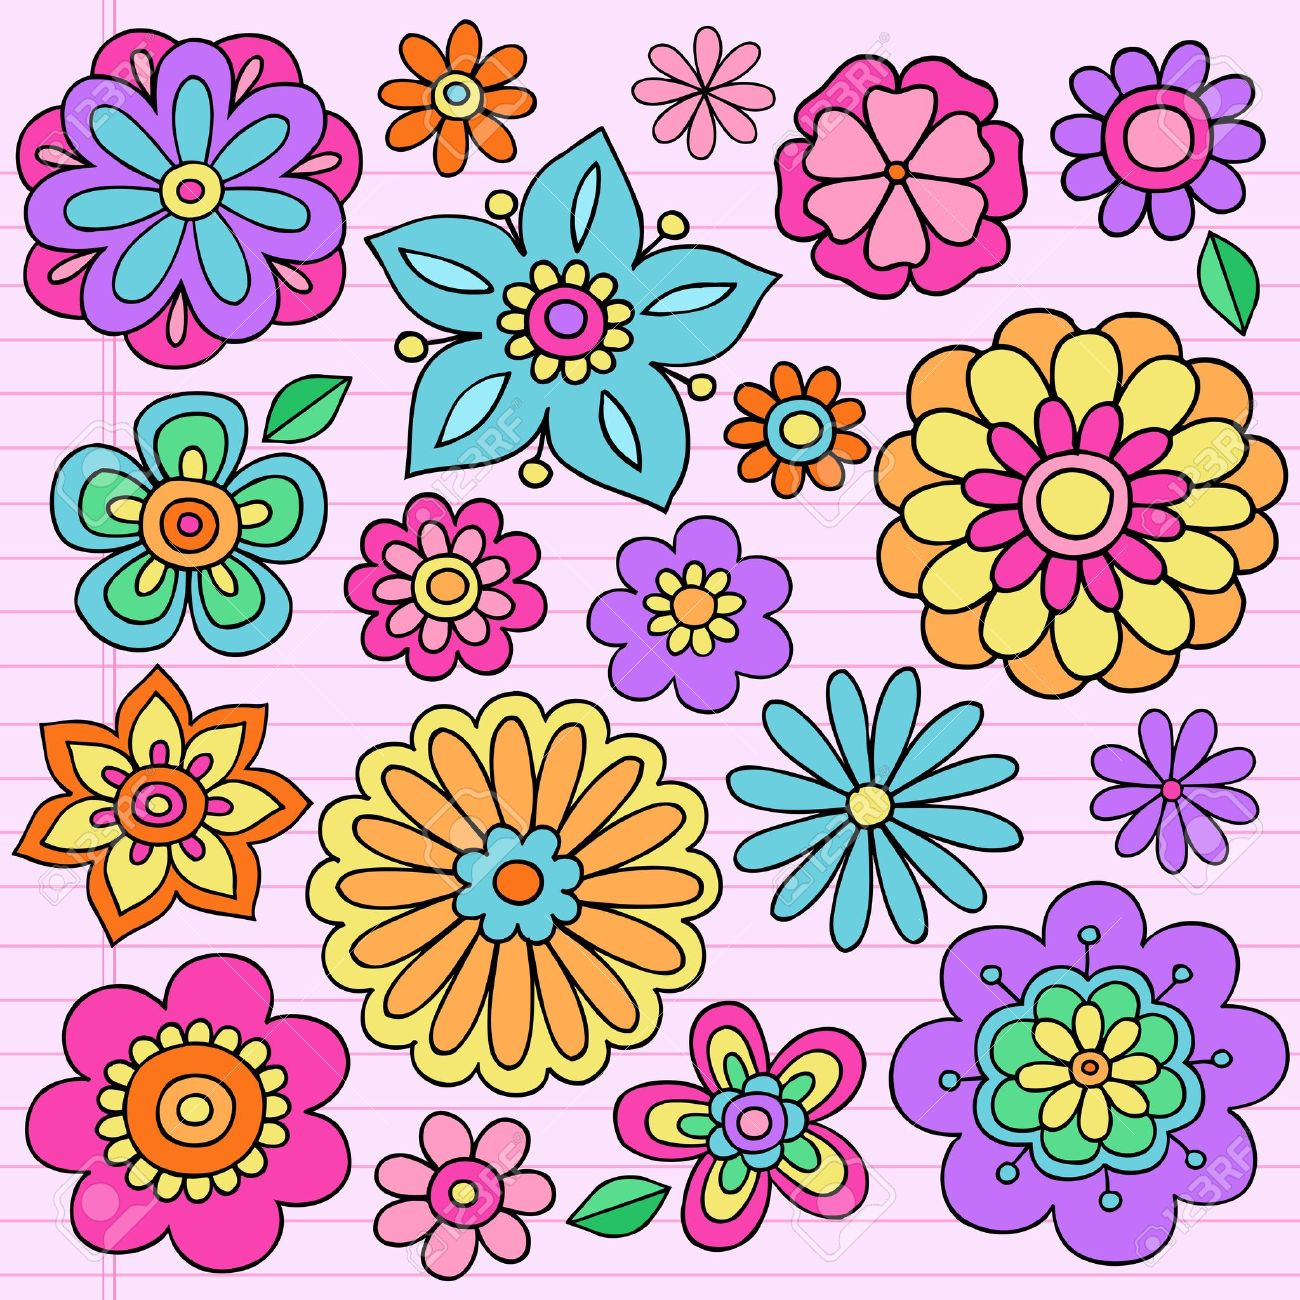 Flower designs drawing at getdrawings free for personal use 1300x1300 flower power groovy psychedelic hand drawn notebook doodle design mightylinksfo